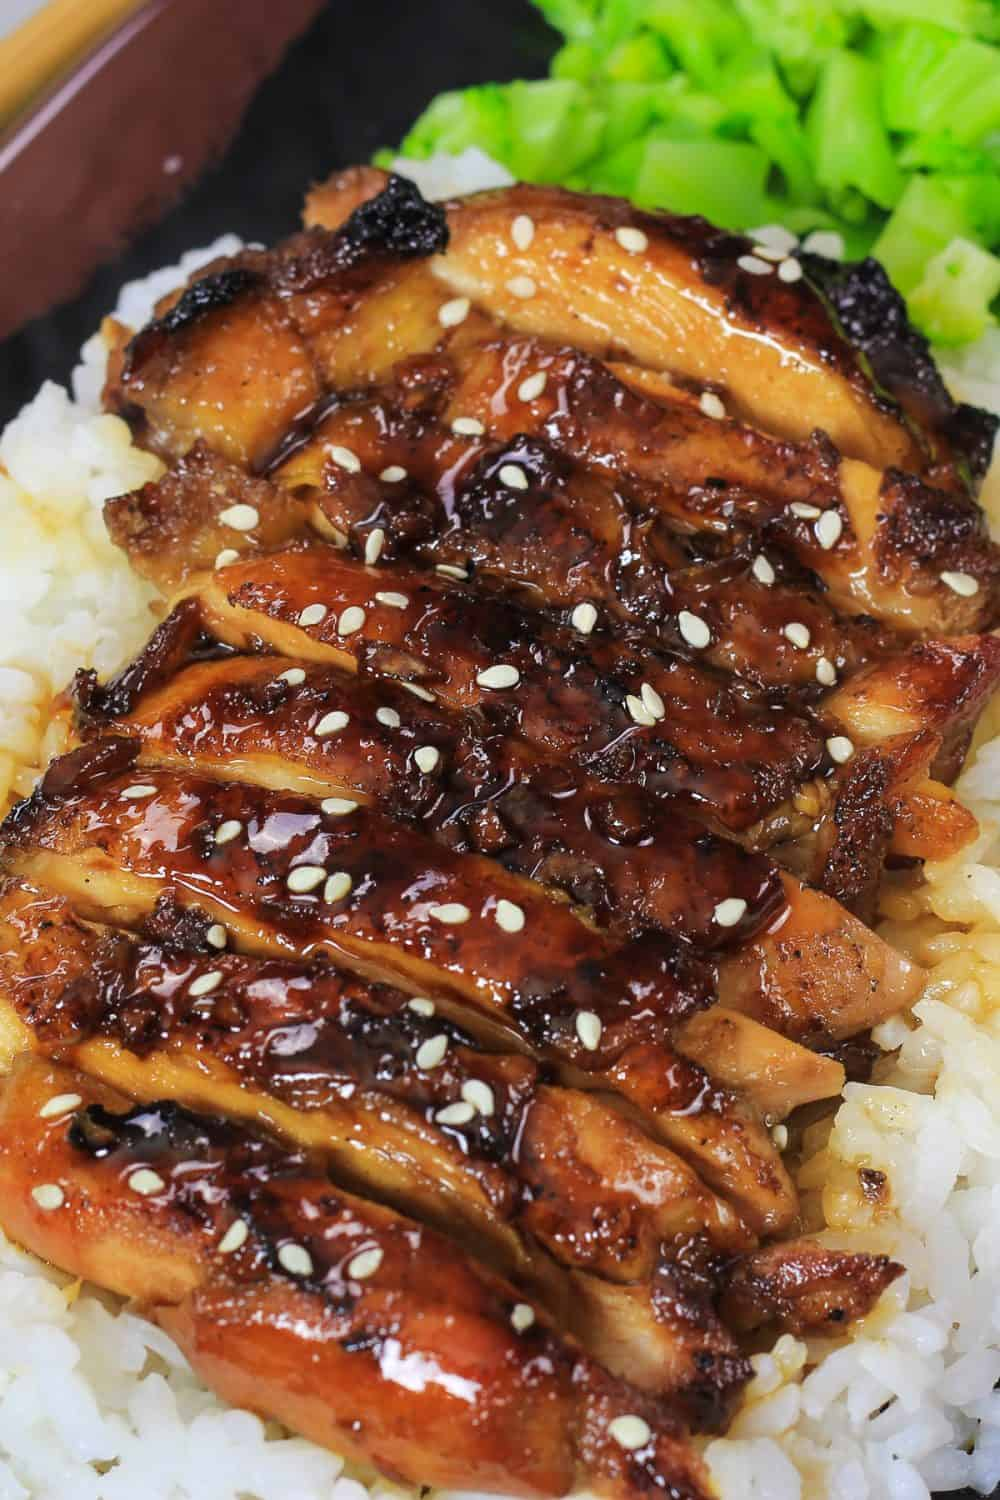 A close up of sliced teriyaki chicken.